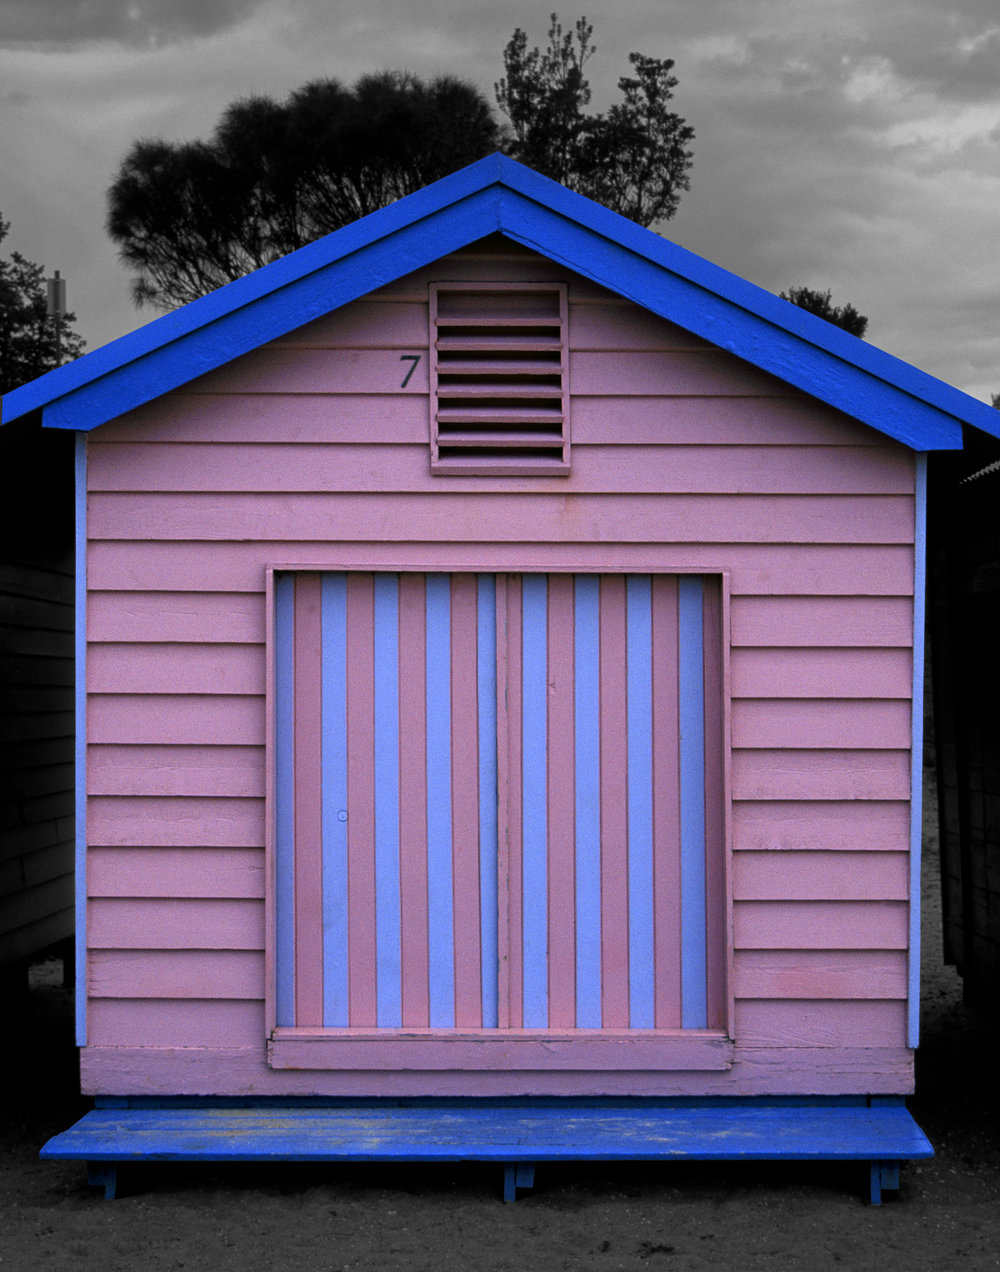 Judy Gelles,  Beach Box No. 7 , 2003  Digital pigment print, 8 x 10 in, edition of 20; 11 x 14 in, edition of 25; 16 x 20 in, edition of 25   Inquire